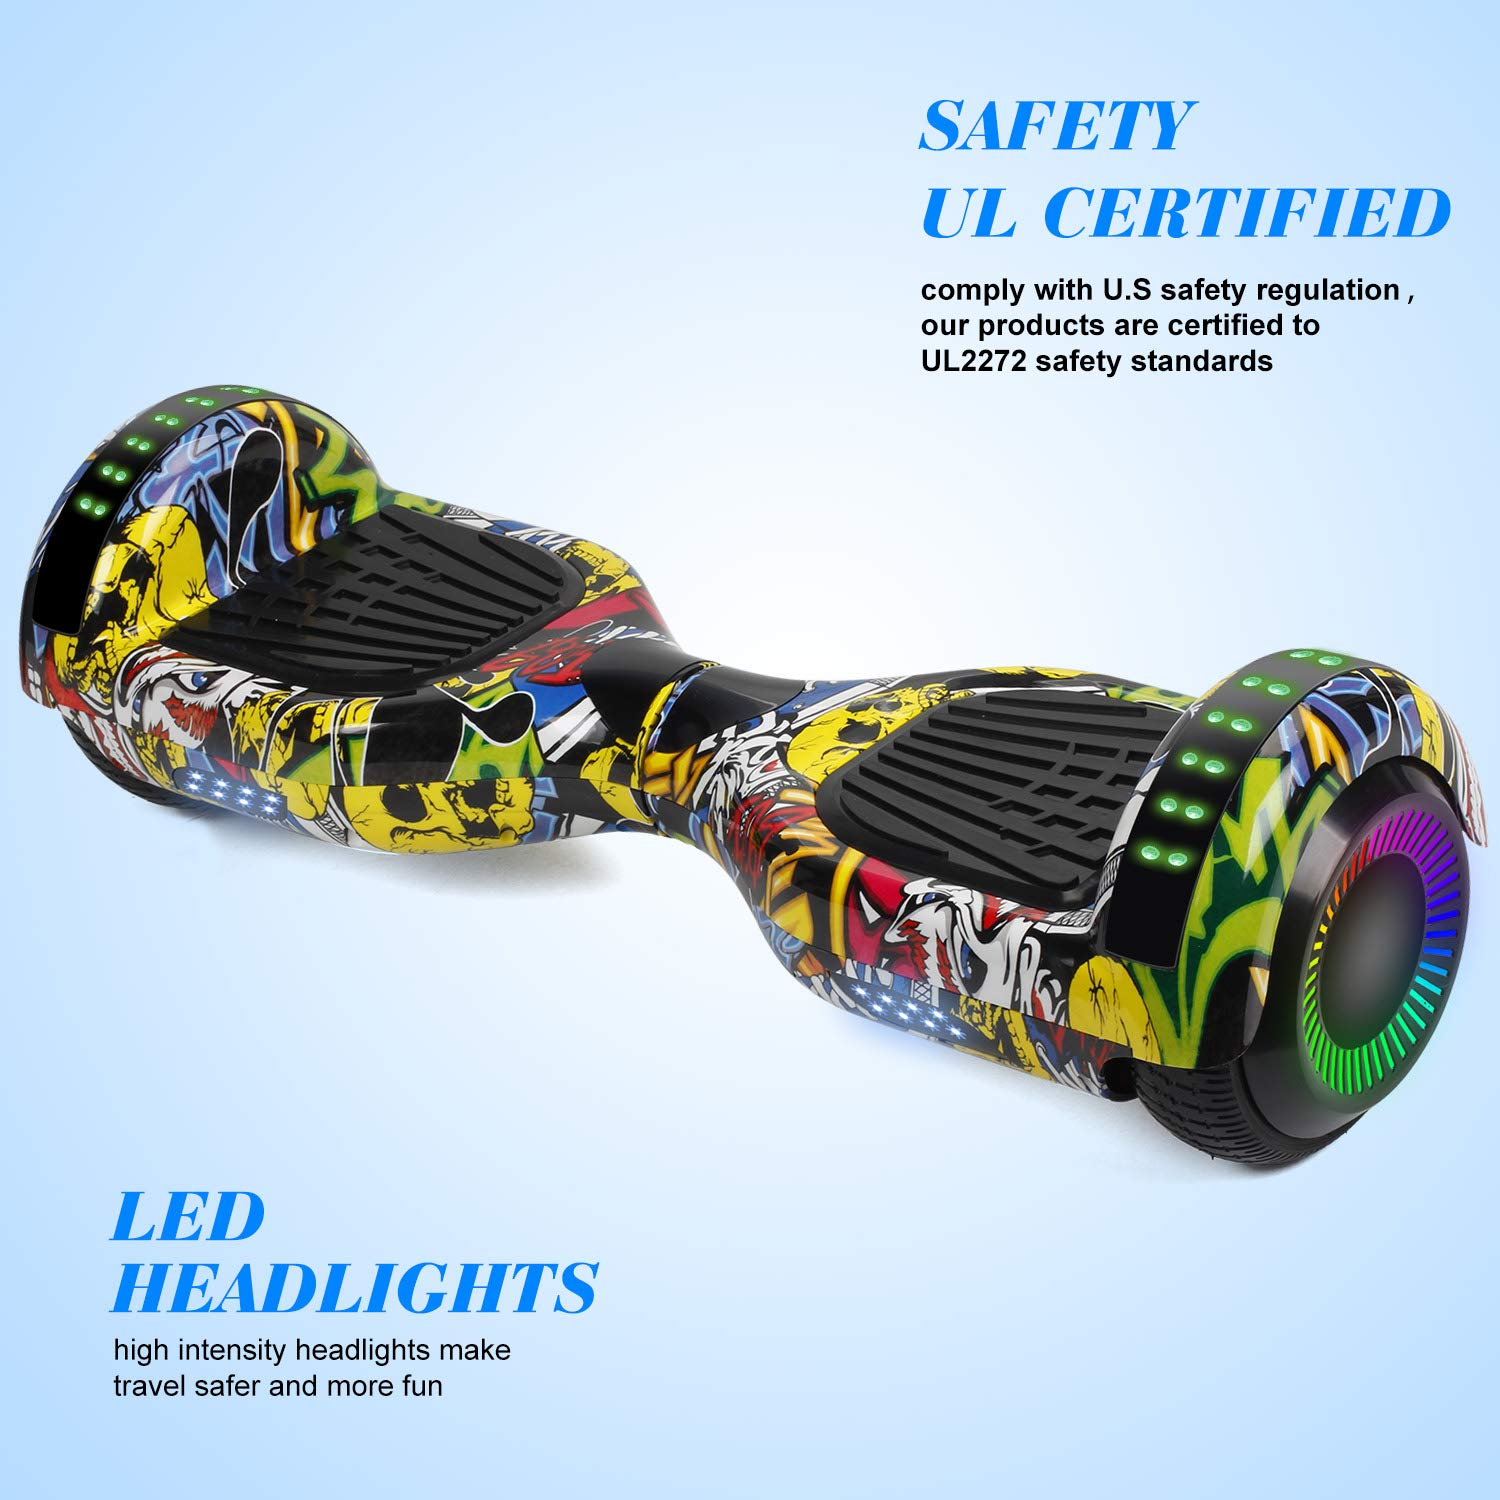 SWEETBUY Hoverboard Two-Wheel Self Balancing Electric Scooter UL 2272 Certified,6.5 inch Self Balancing Scooter with Carry Bag by SWEETBUY (Image #3)